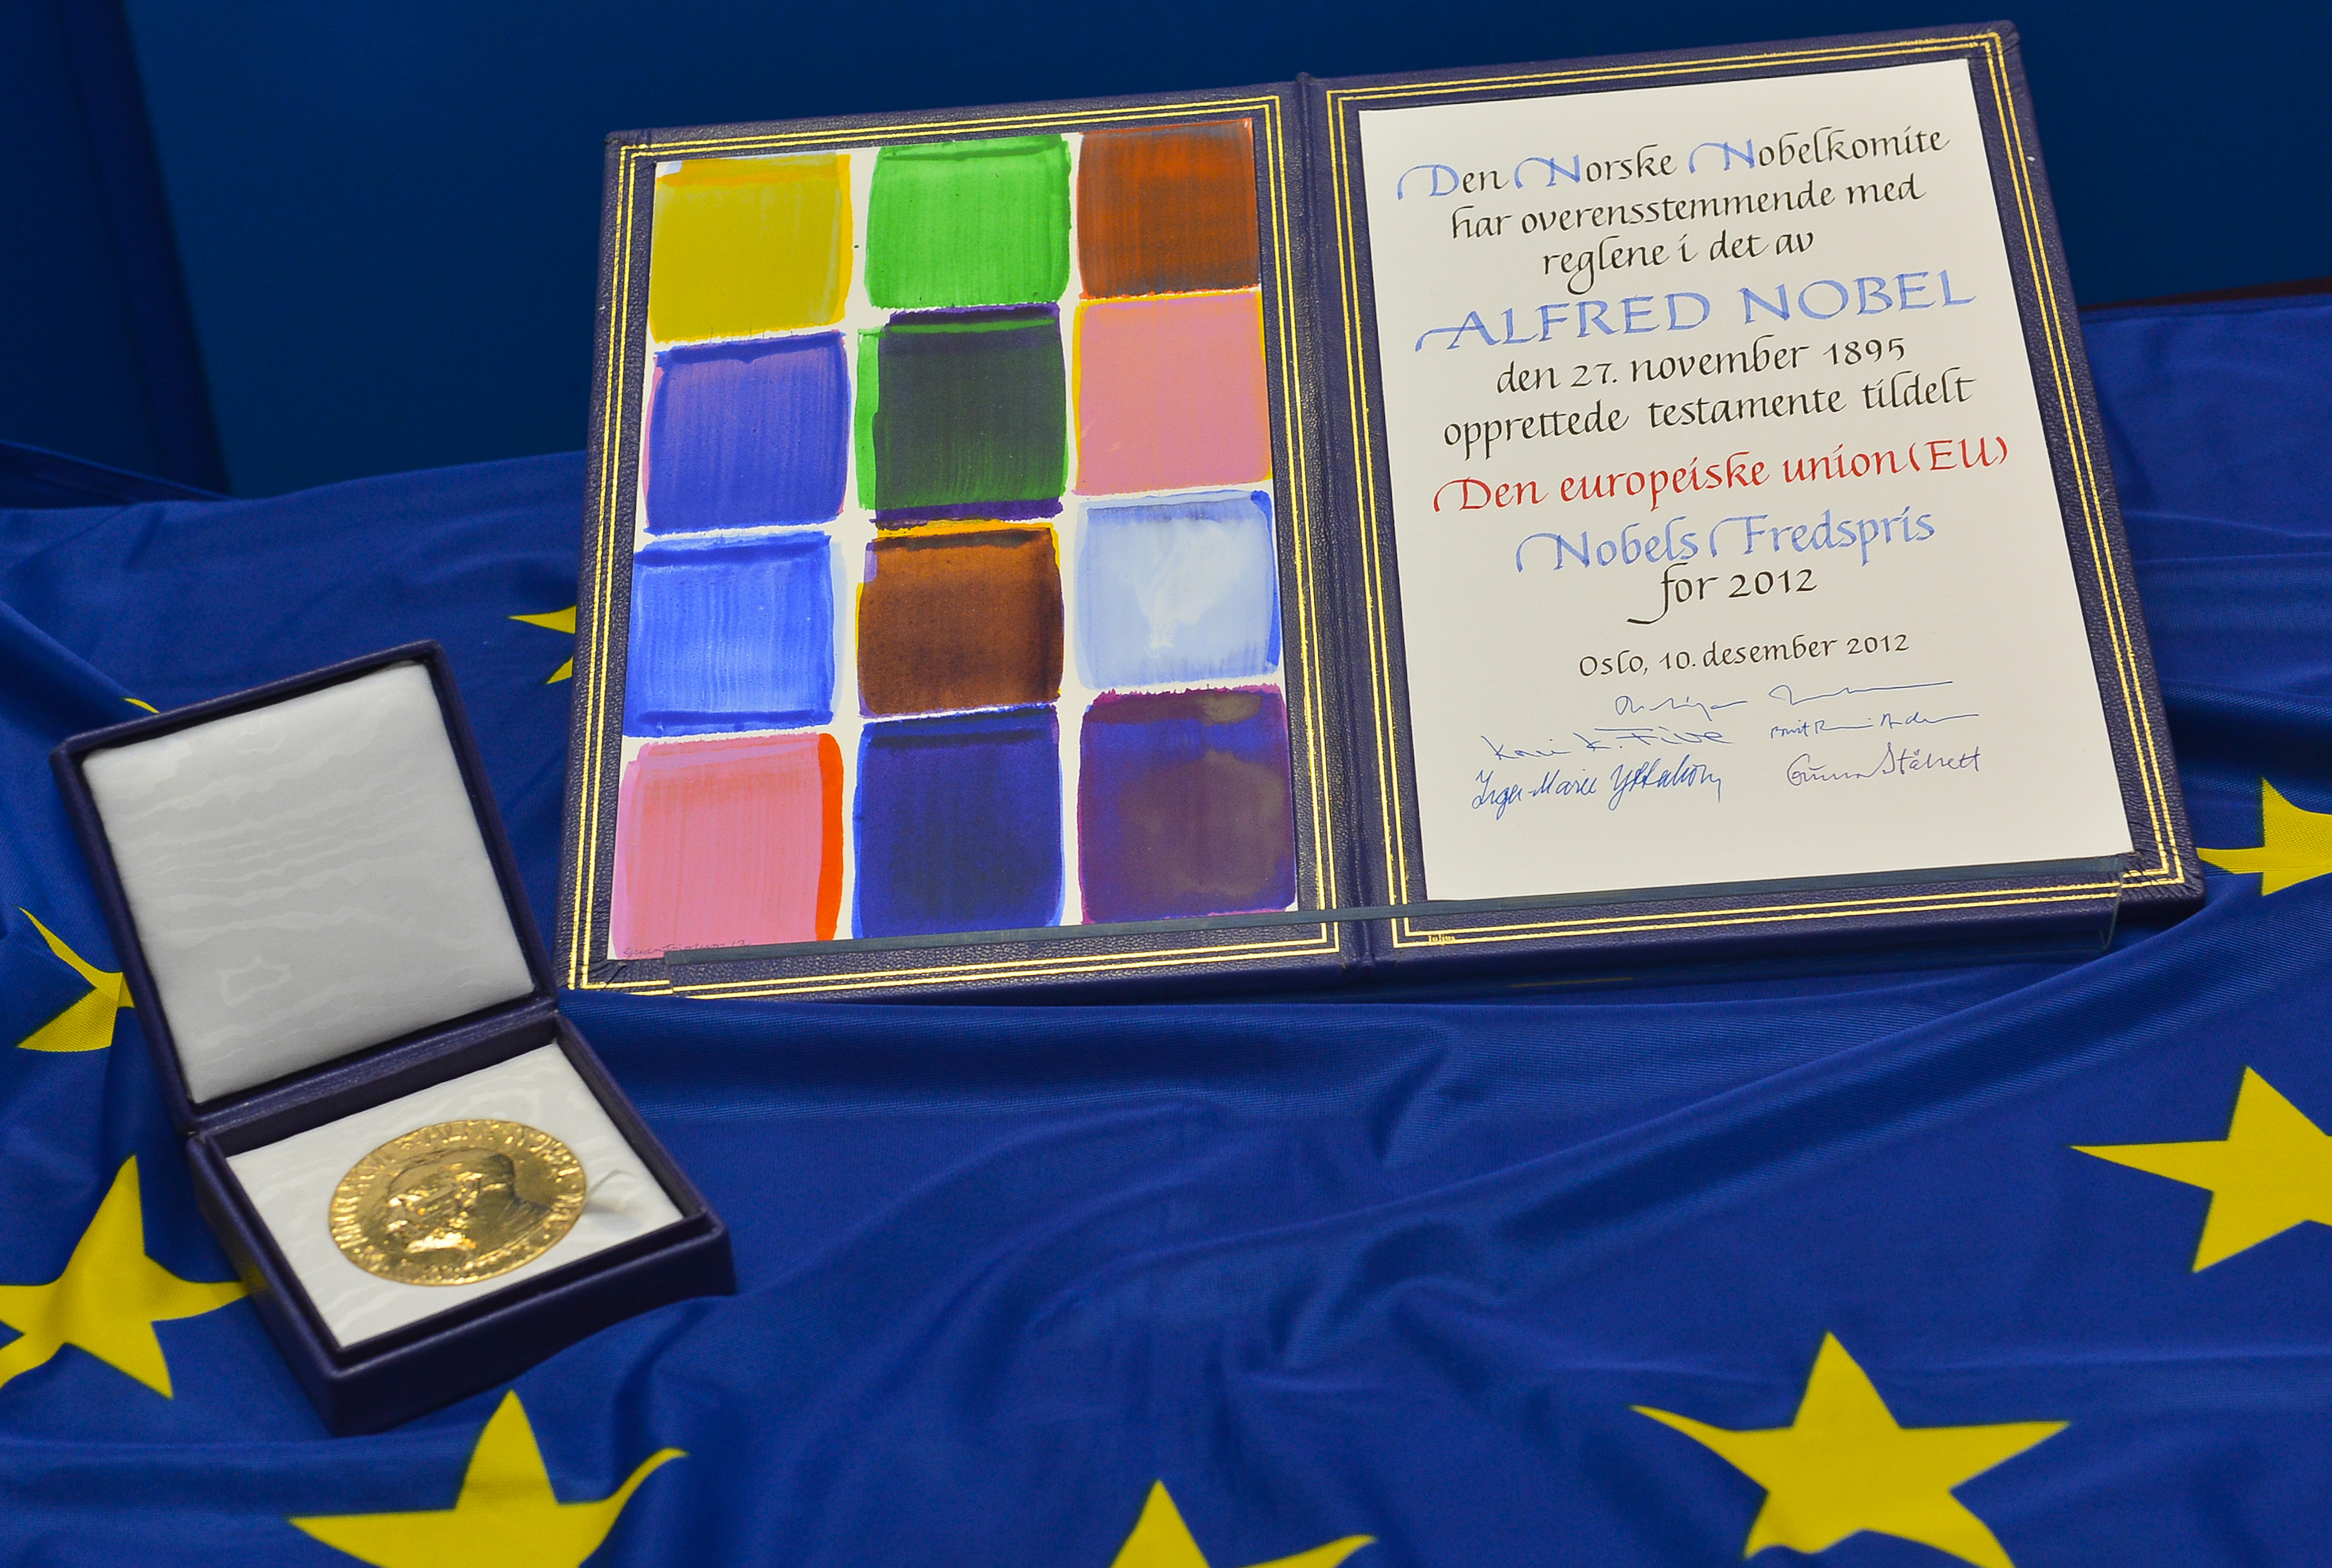 Medal and diploma of the Nobel peace Prize